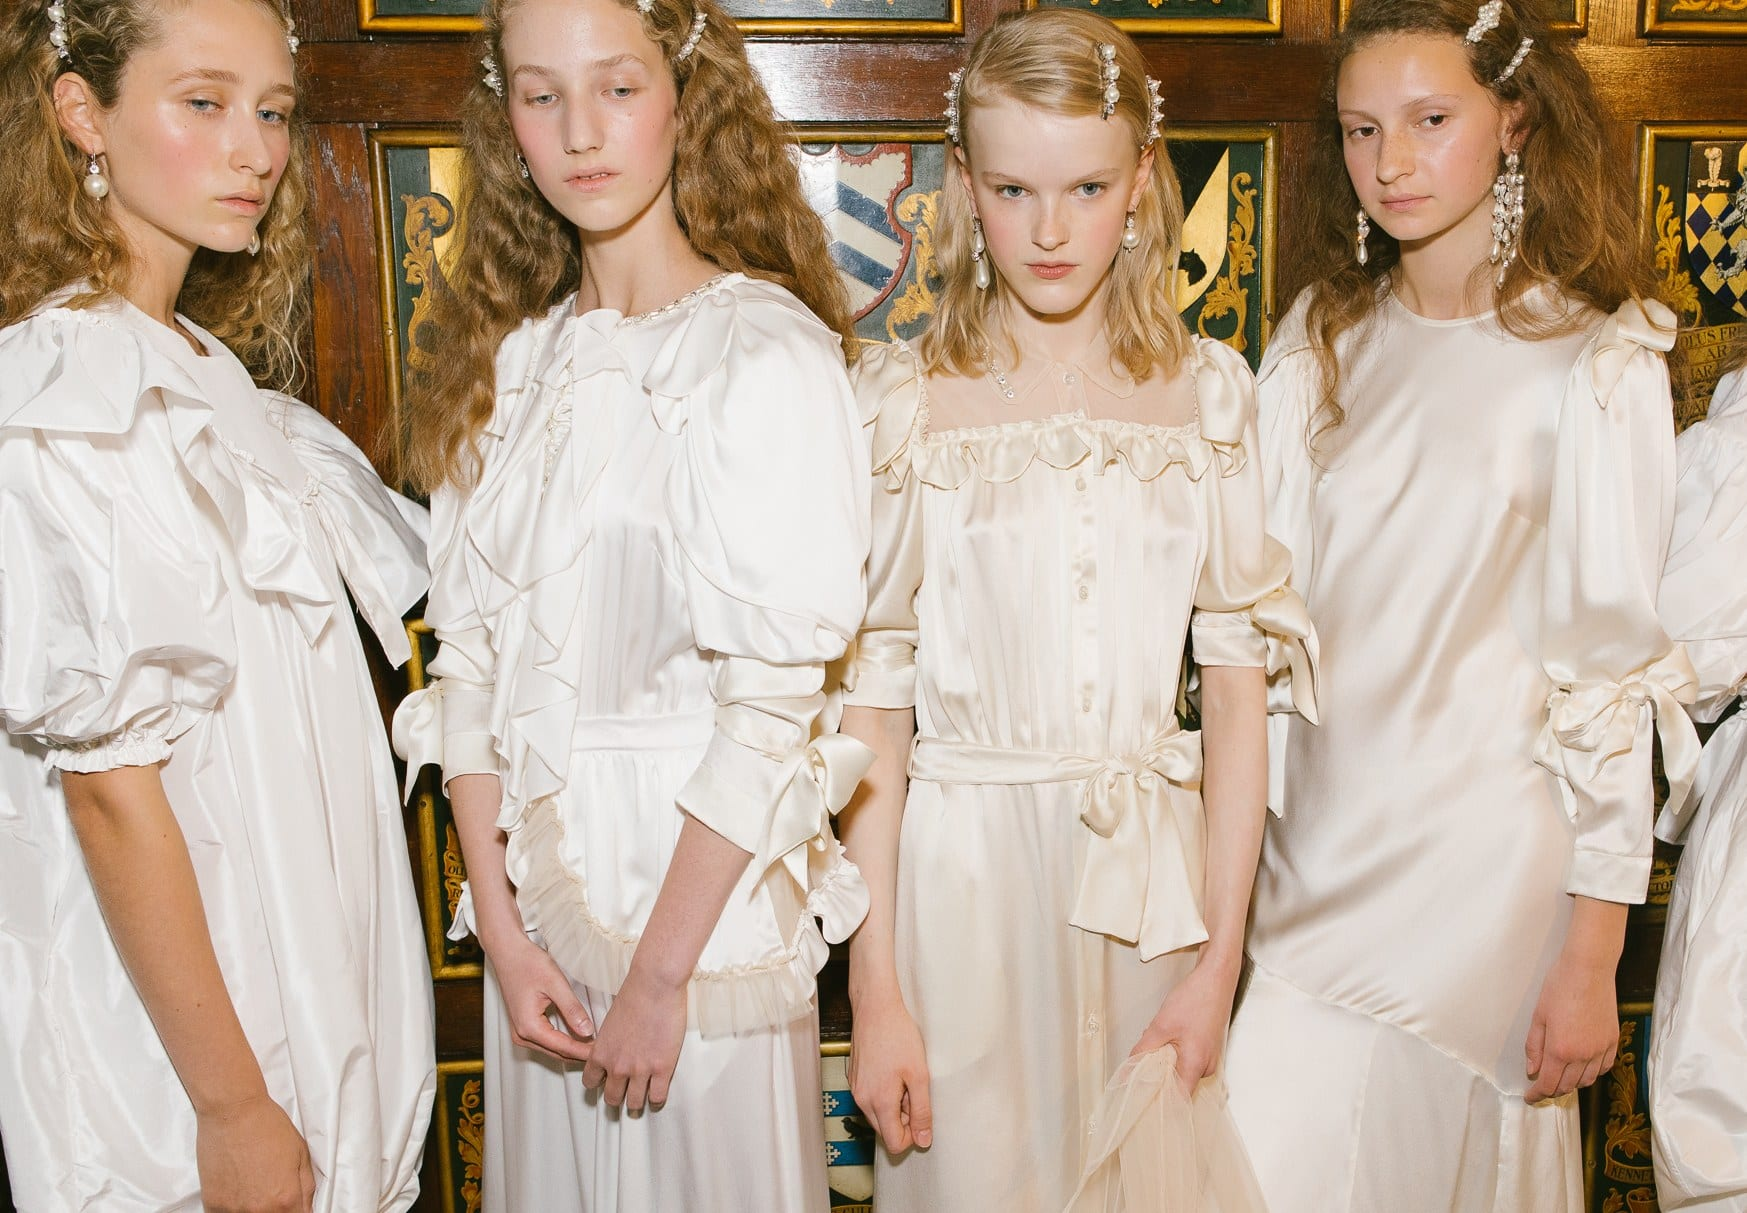 Pearl hair clips in Fall 2018 Fashion Show in London